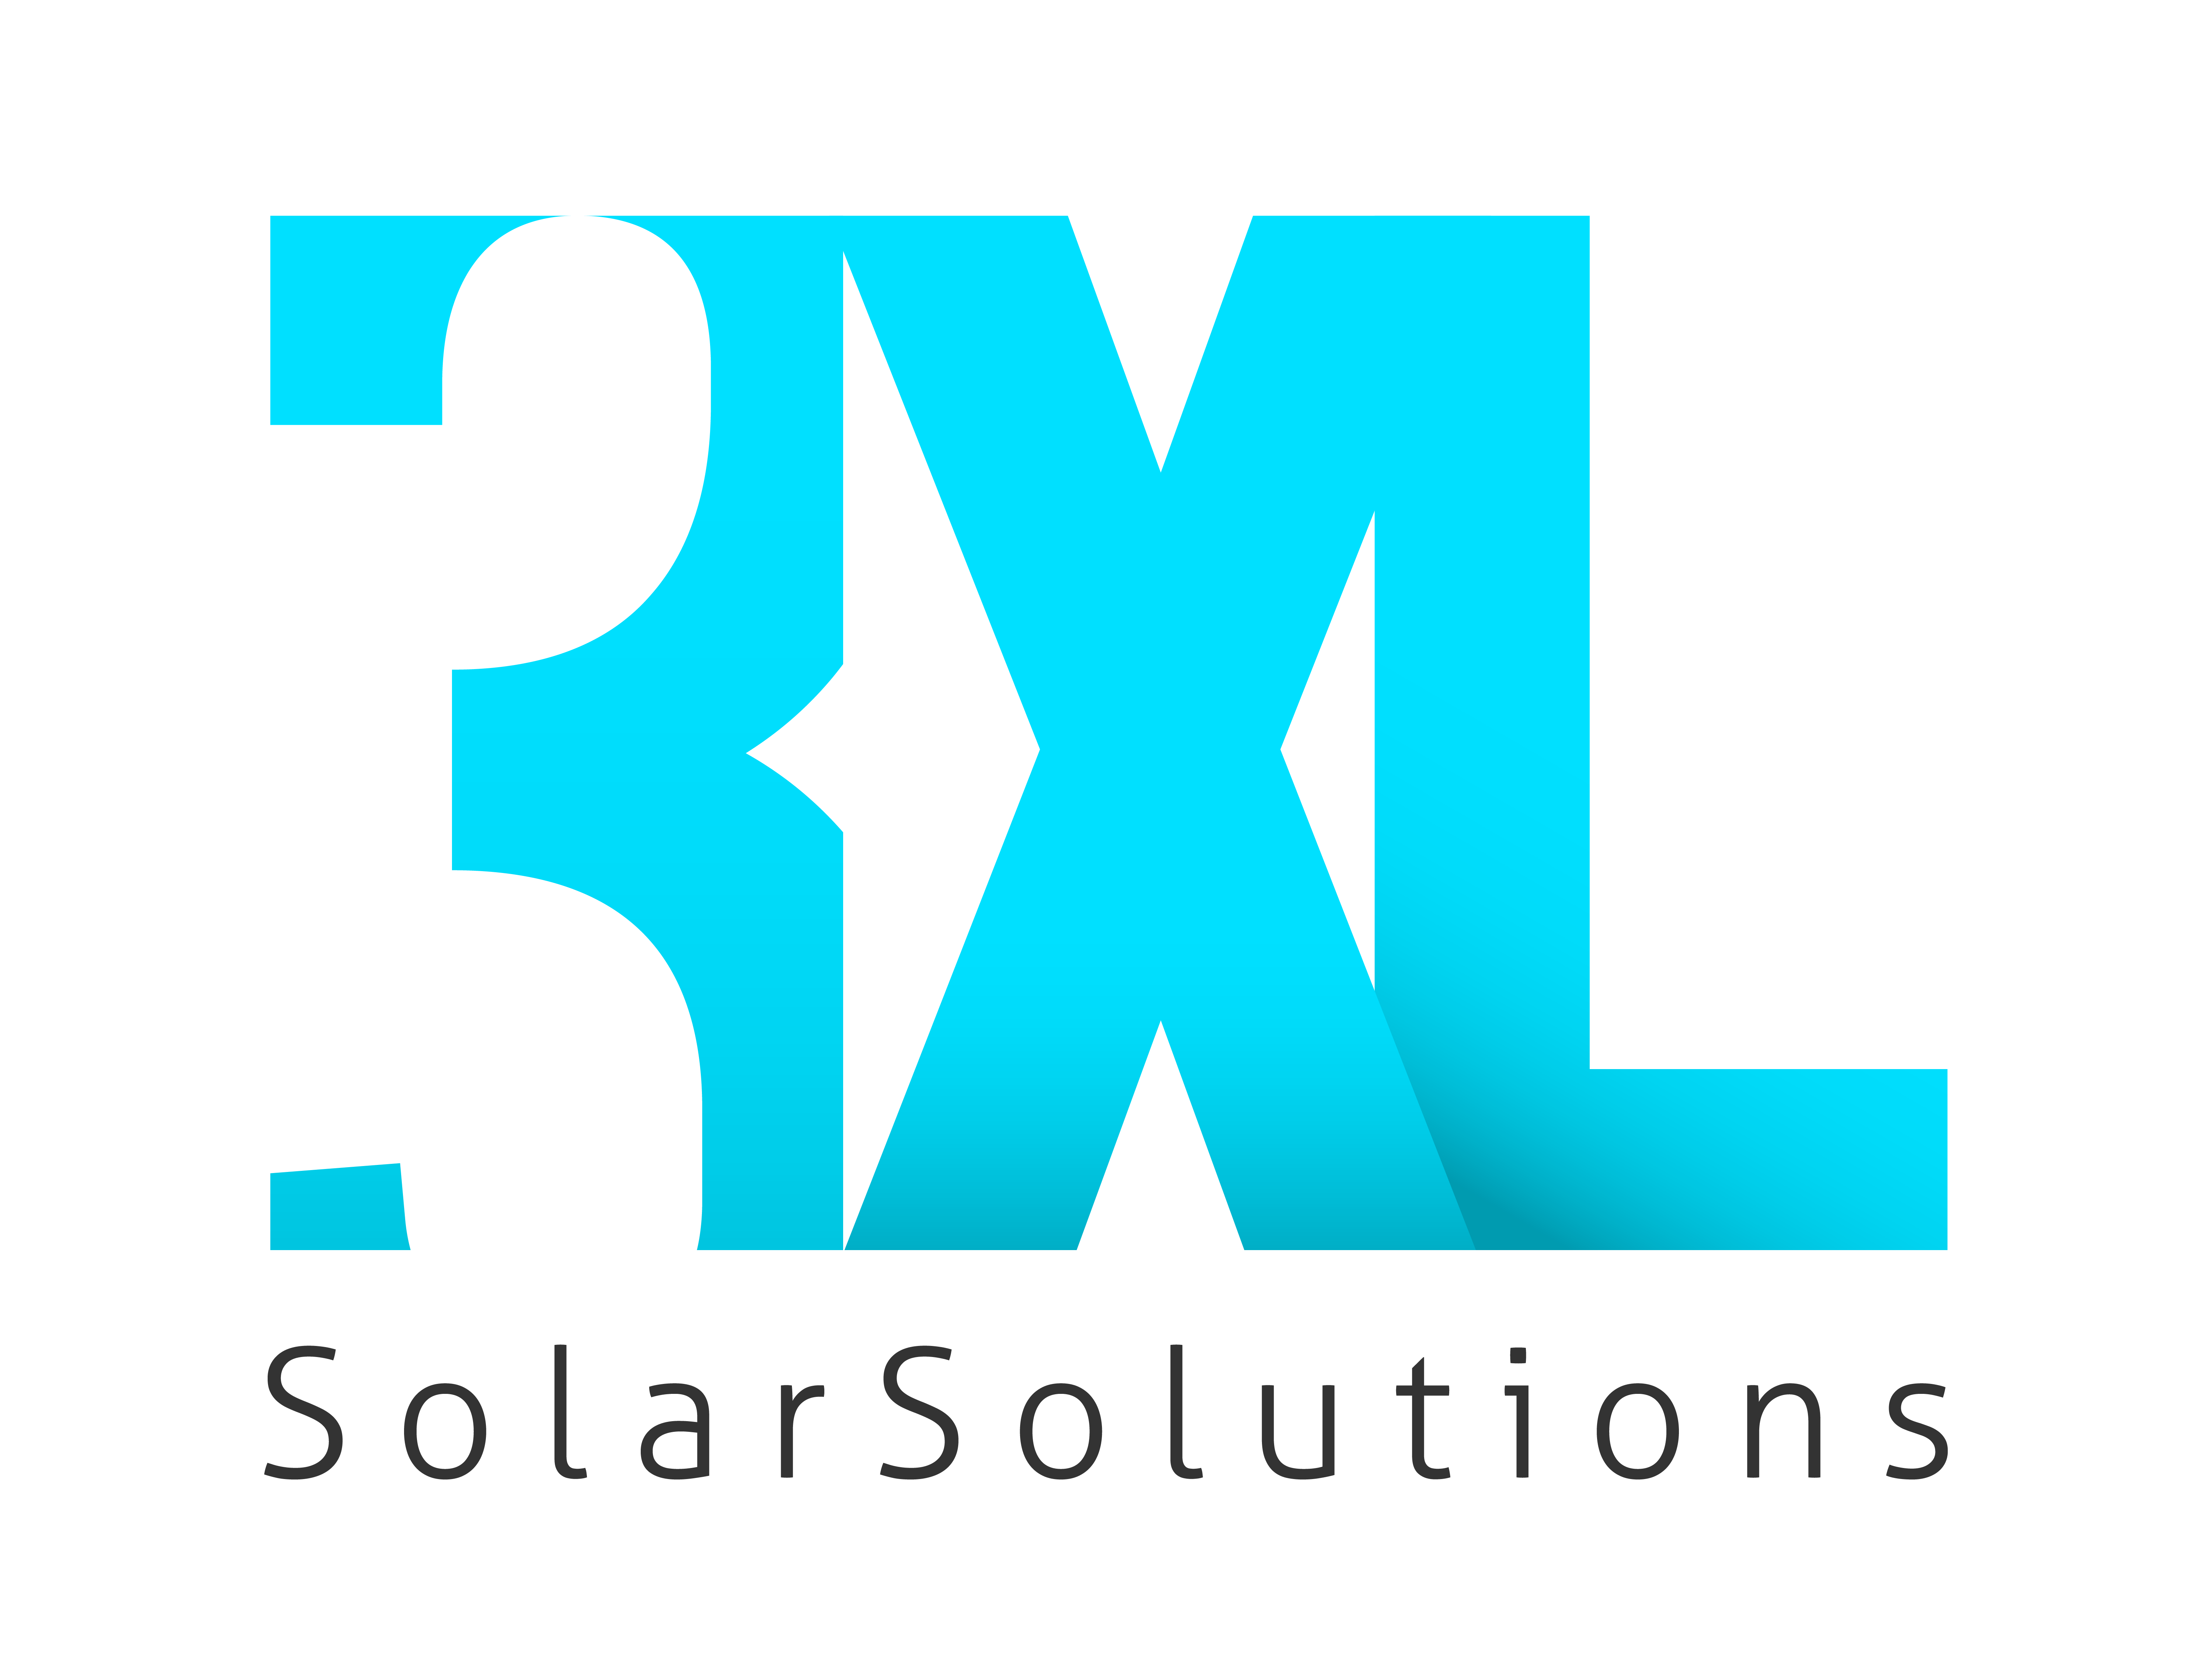 3XL-Solarsolutions